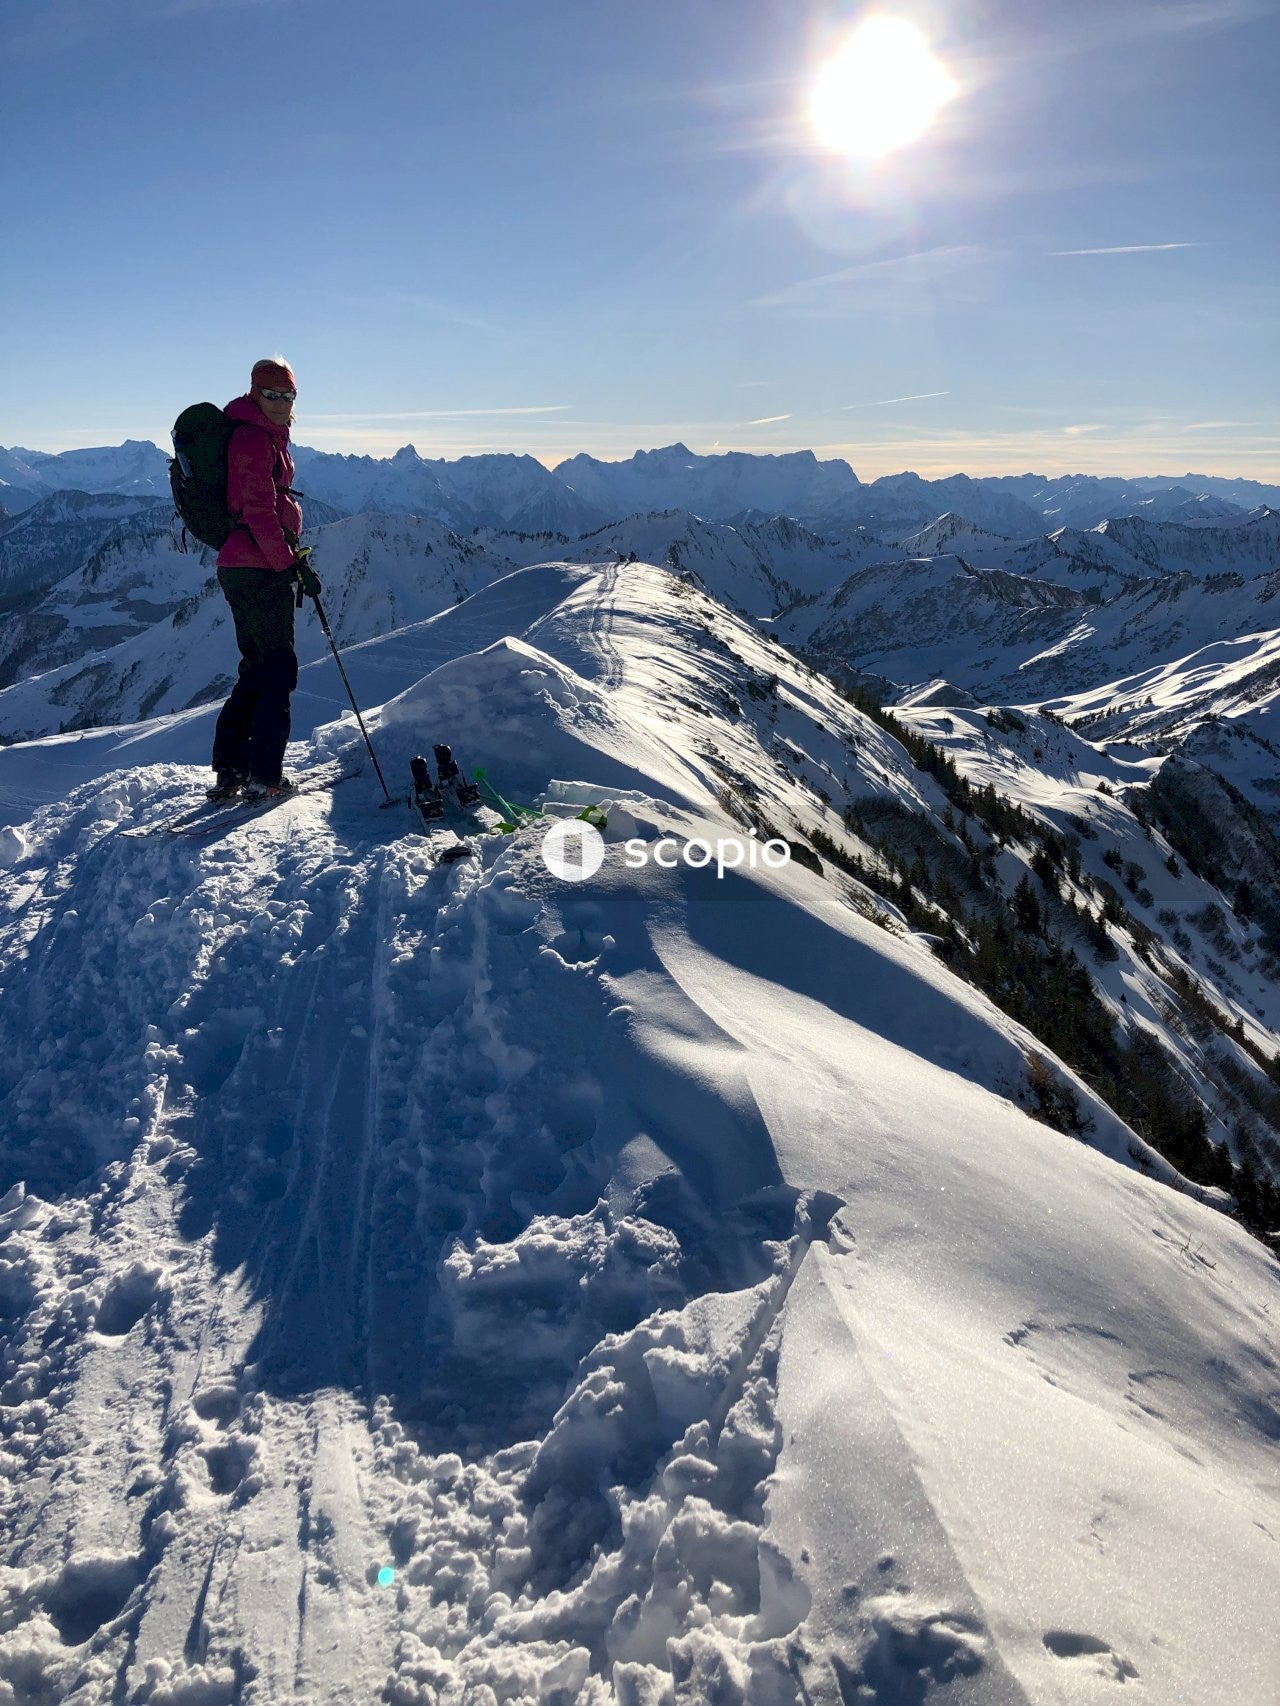 Person in red jacket and black pants standing on snow covered mountain